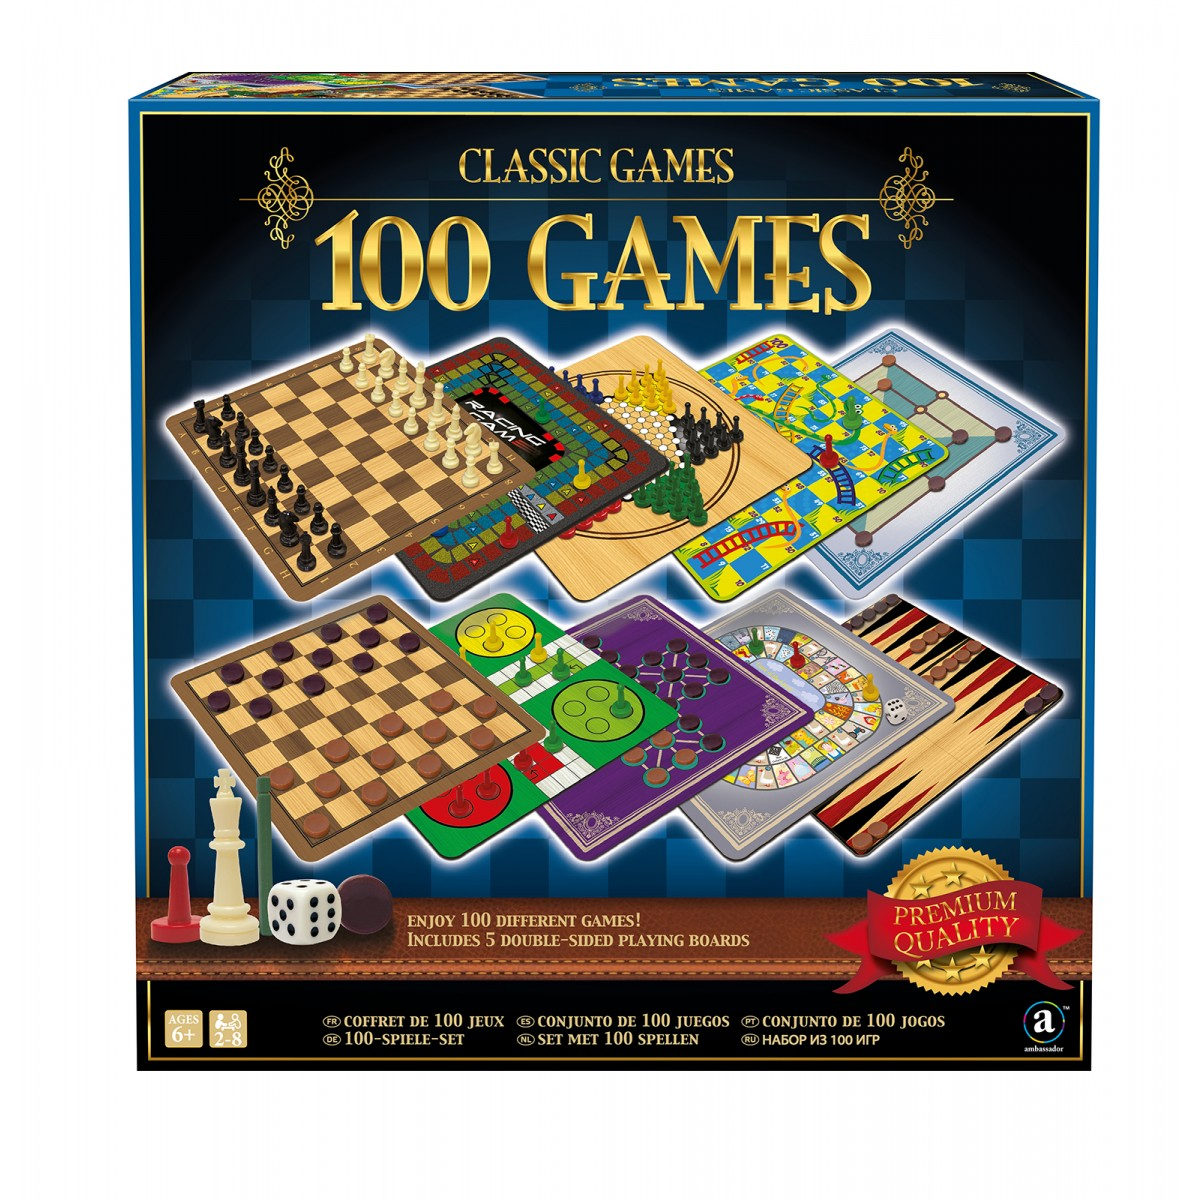 classic games 100 games instructions